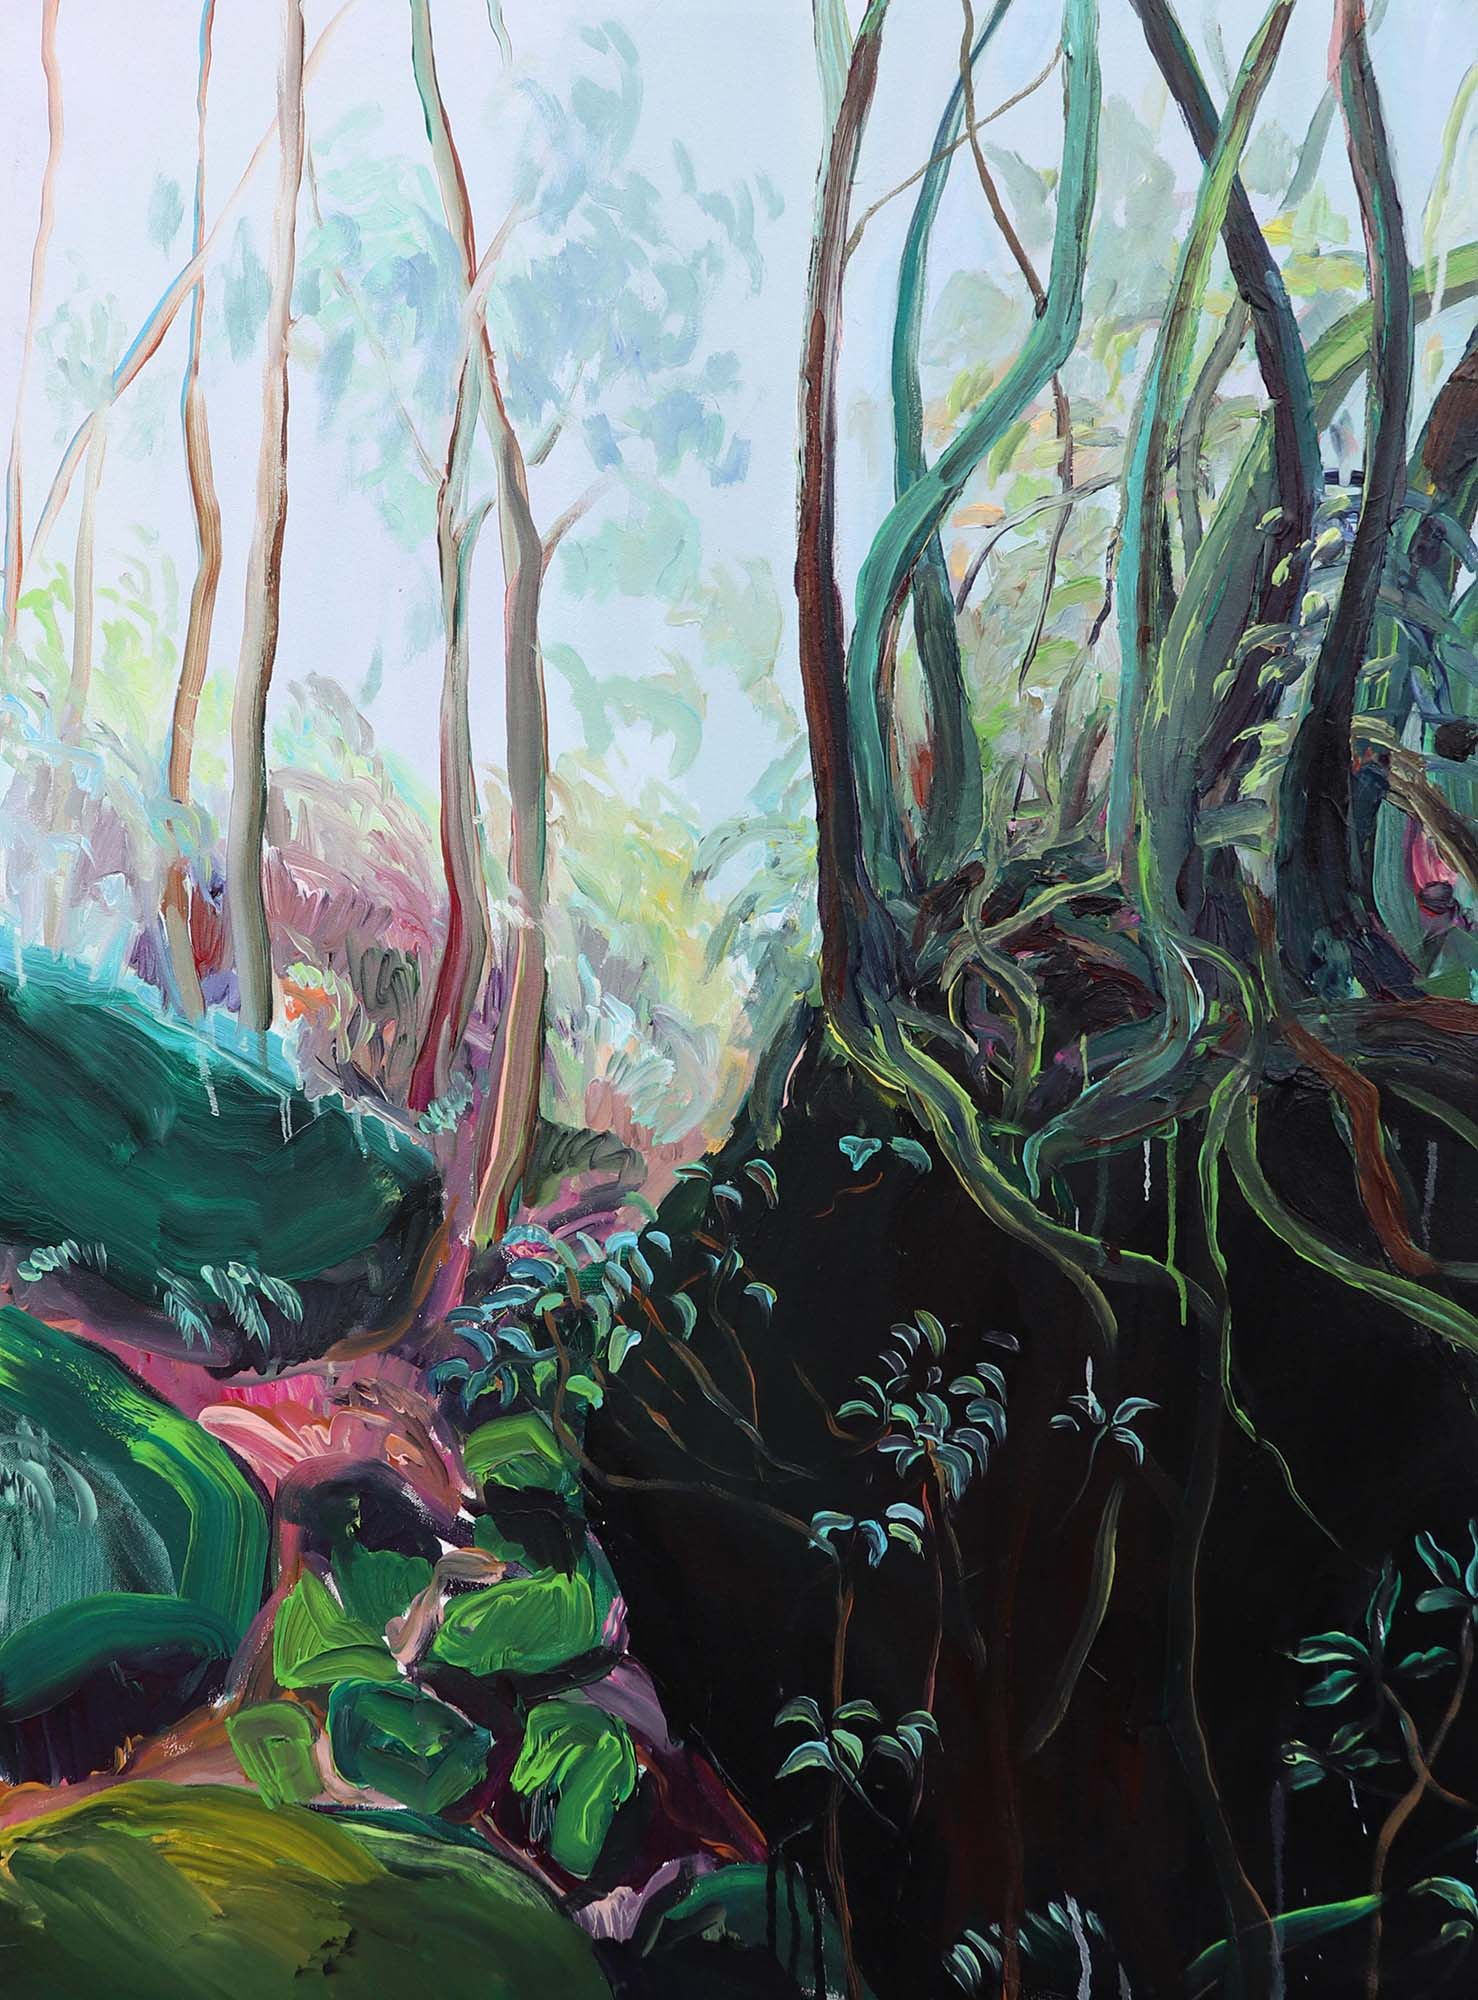 Jana Bednarova, Mawten Forest, Acrylic on canvas, 100 x 75 cm, 2019